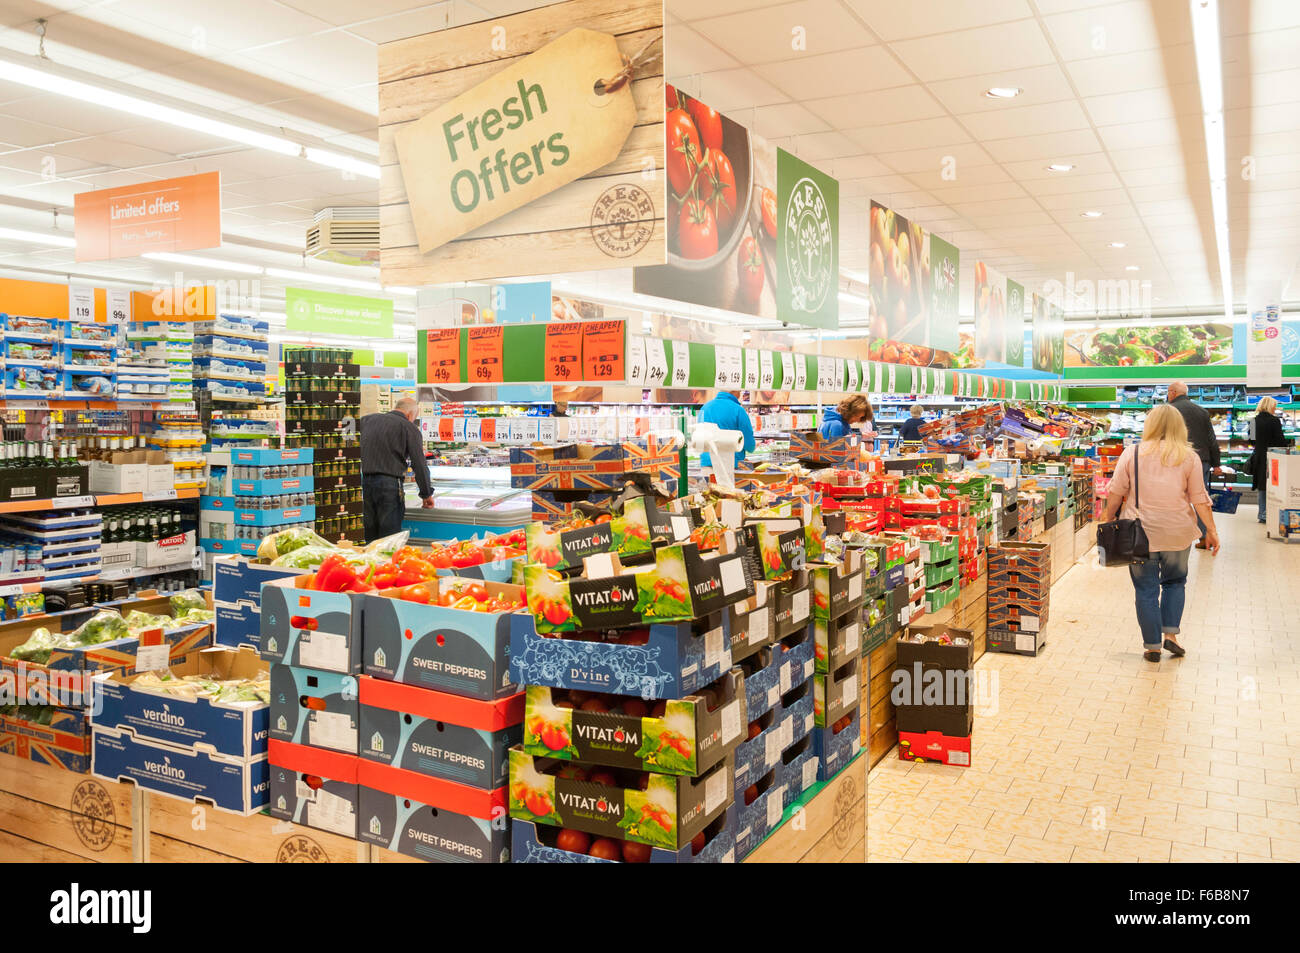 Interior of Lidl Supermarket, High Street, Crowthorne, Berkshire, England, United Kingdom - Stock Image